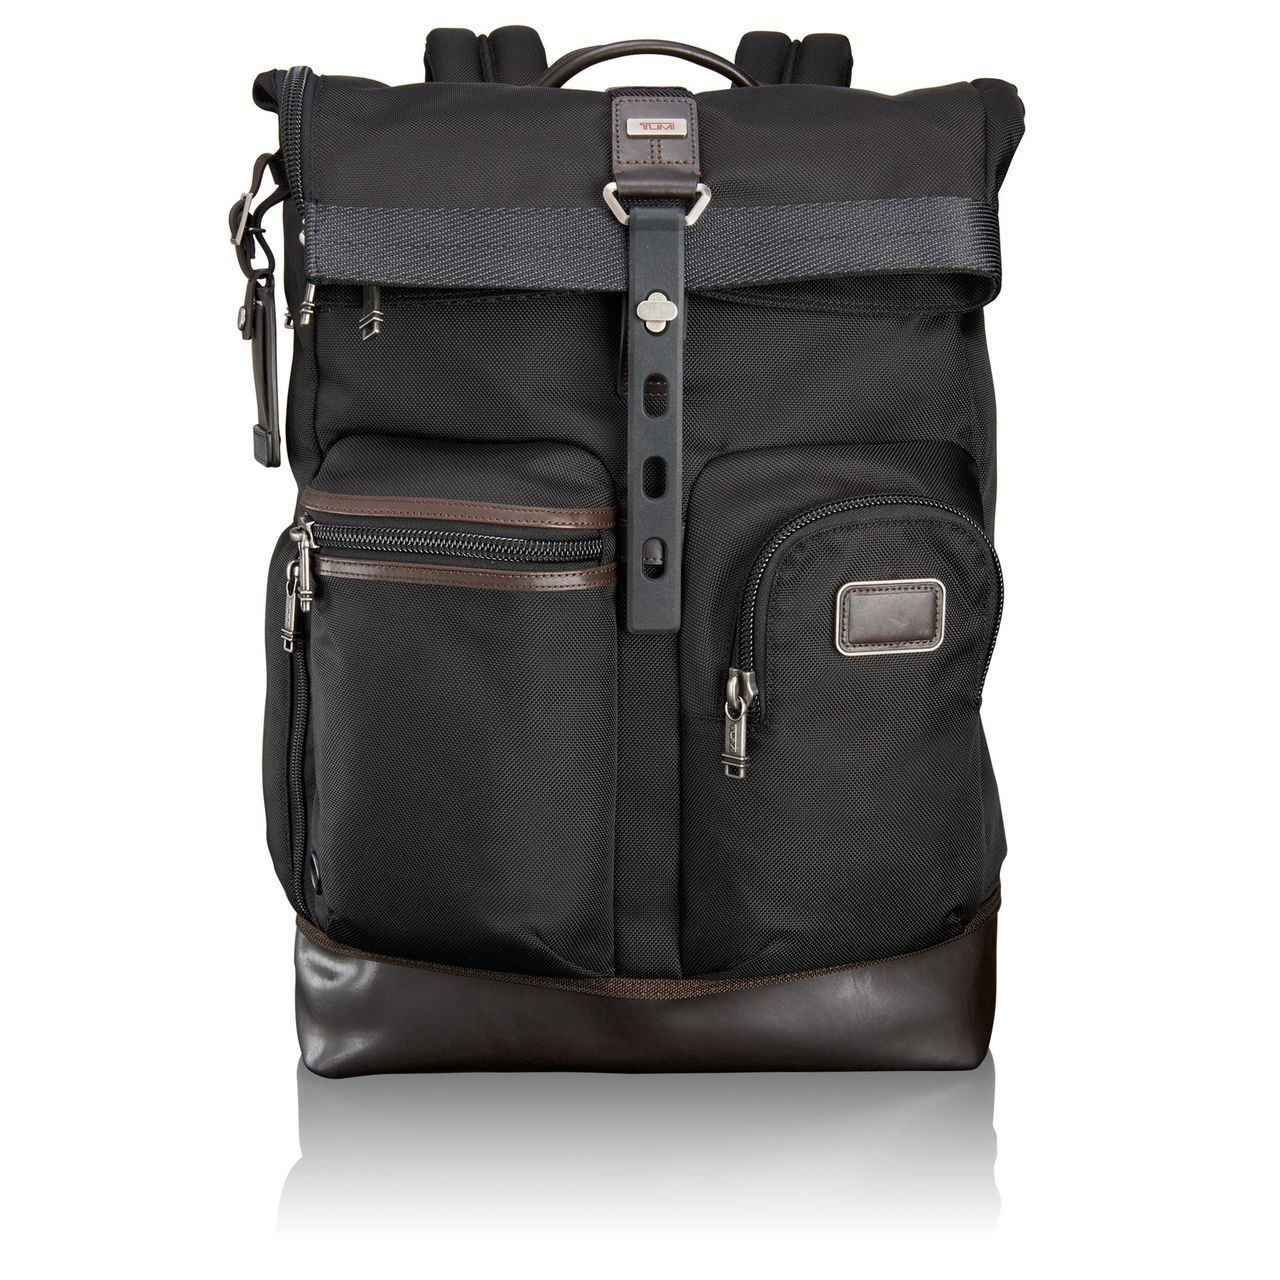 Elegant Tumi Alpha Bravo for Cool Travel Bag Ideas: Tumi Alpha Bravo Mcnair Slim Brief | Knox Rucksack | Tumi Alpha Bravo